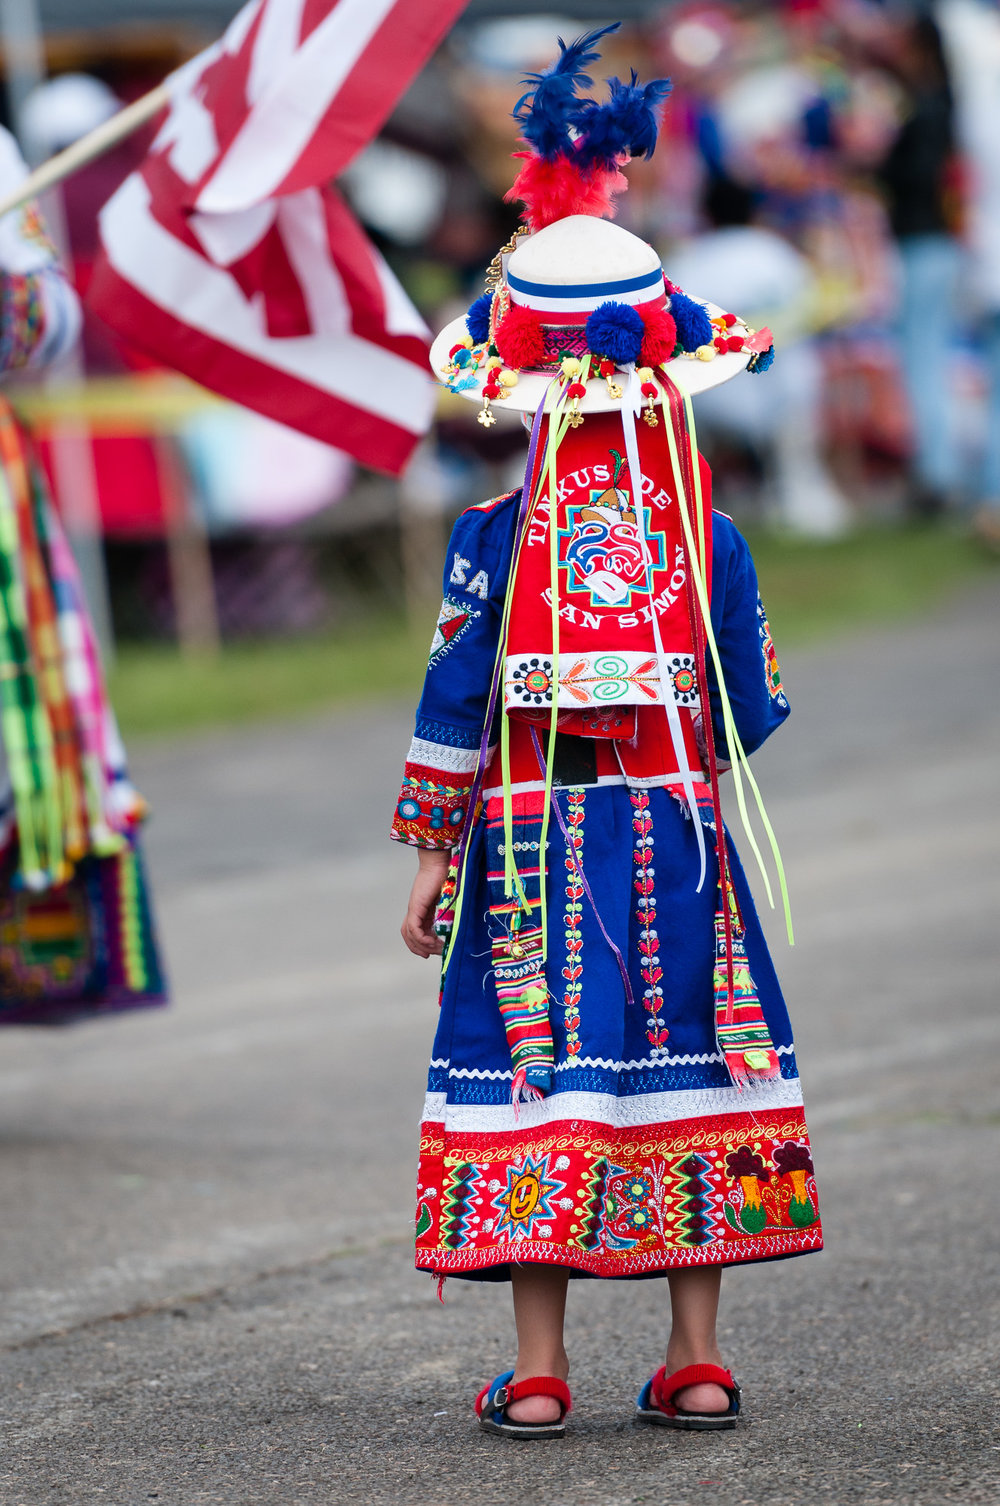 In this version I captured a lone young performer from Tinkus de San Simon USA, who had performed a Tinkus dance. She is facing away from me, looking towards the American flag and back towards the rest of her group. I really like the moments captured in these two images.